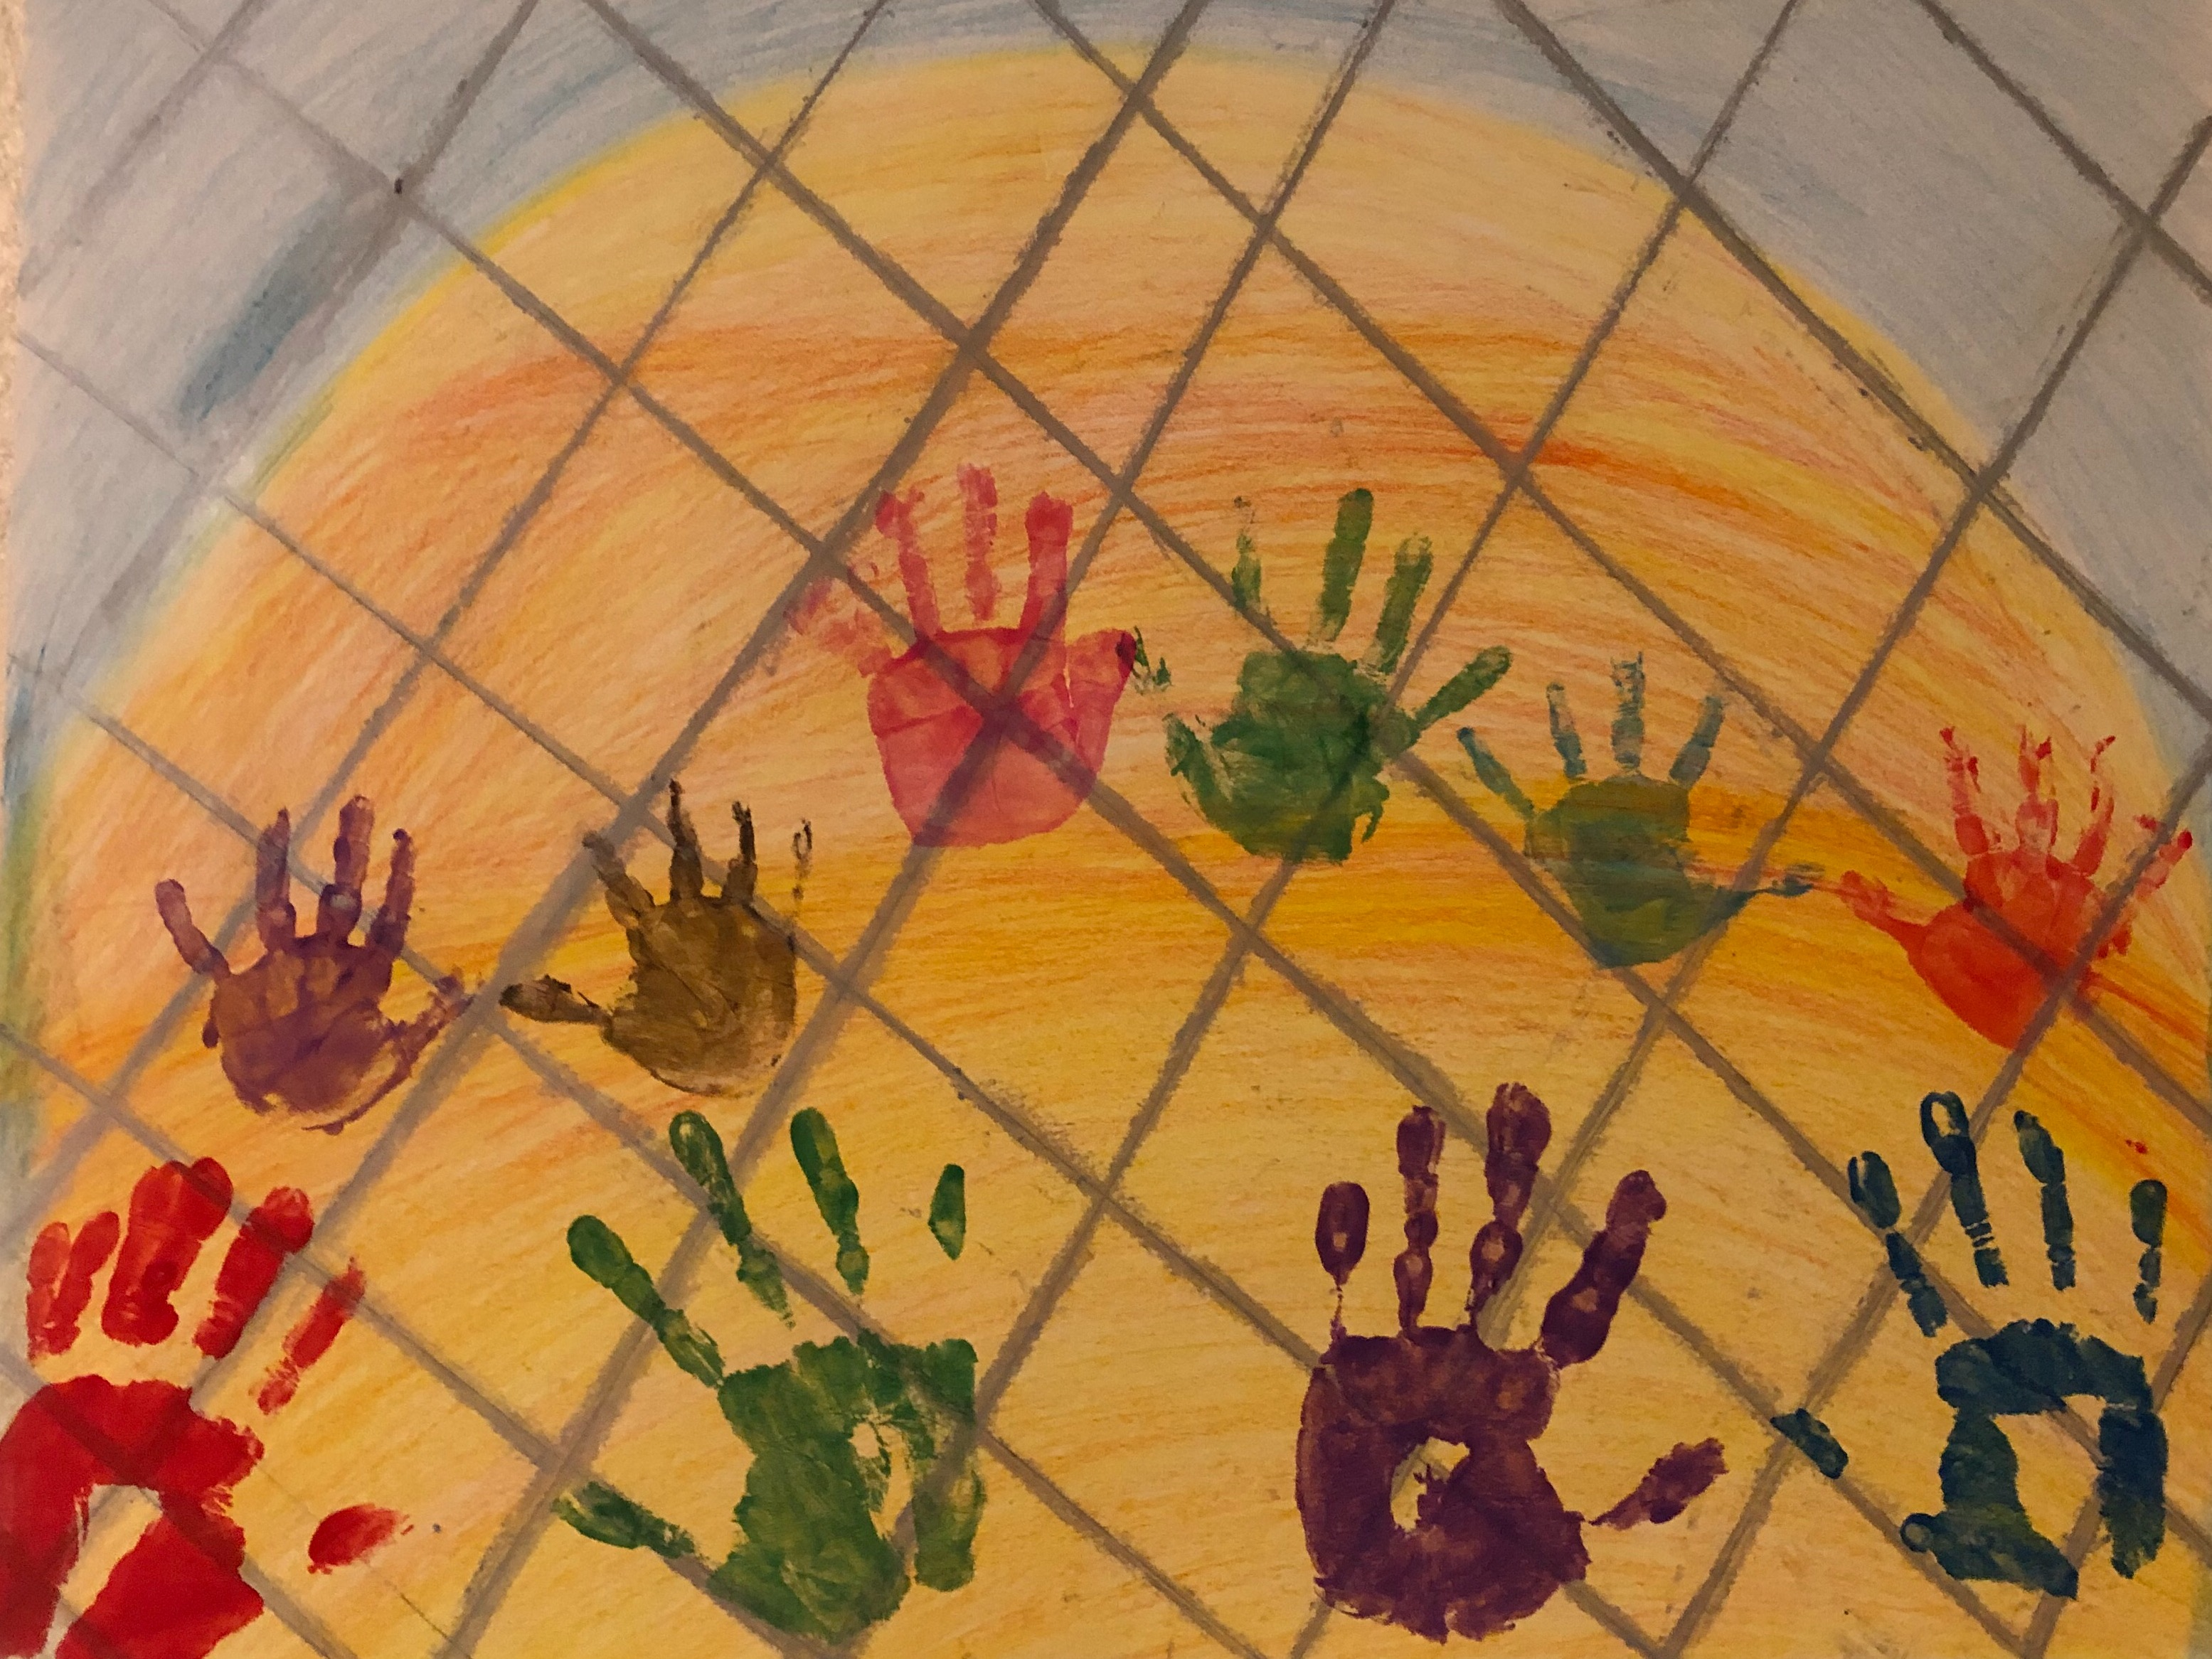 Painting/collage made w/crayon, fingerpaint, and color pencil depicting the hands of child detainees at the southern border